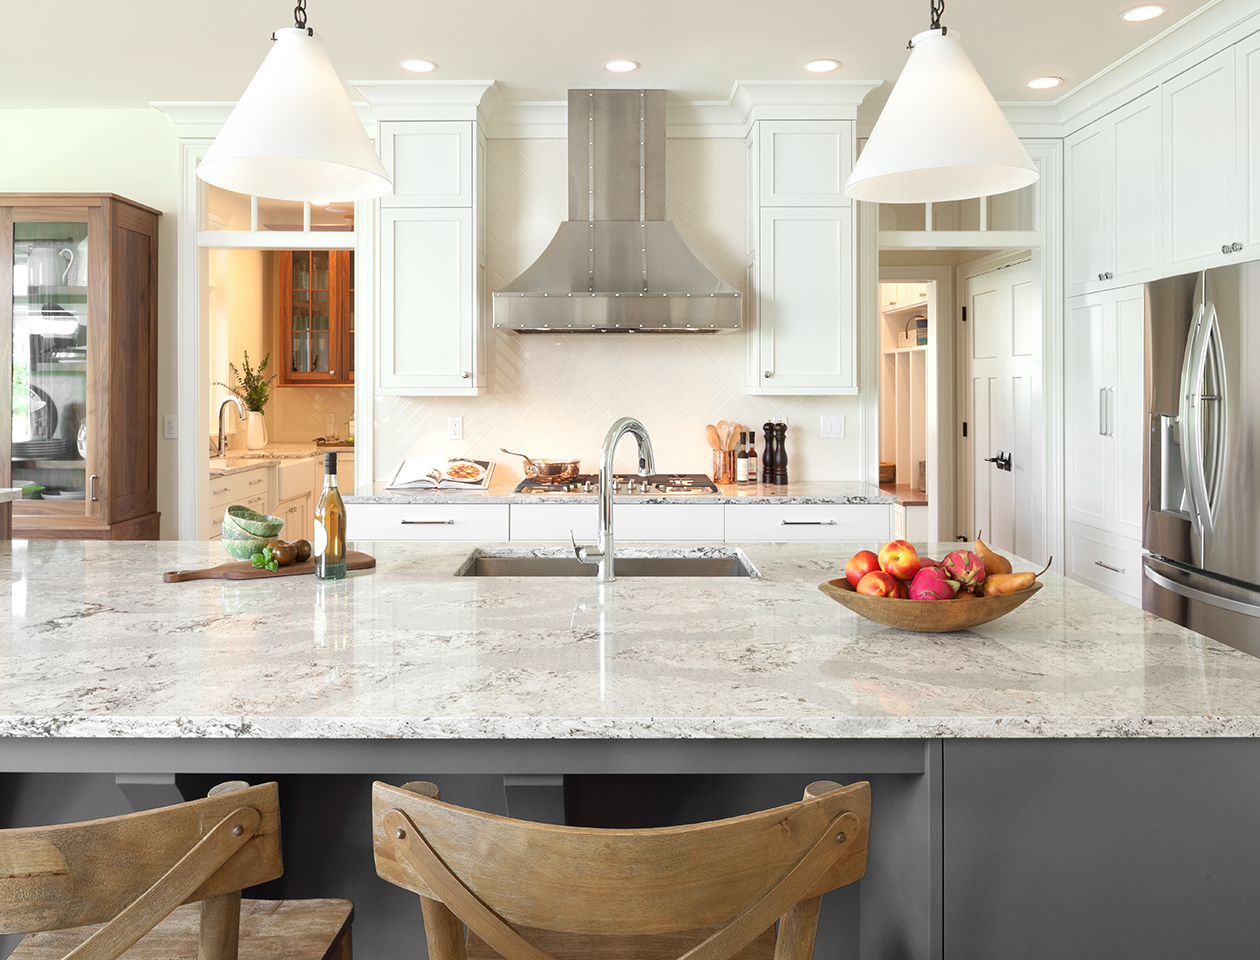 Do You Know How To Protect Your New Countertops